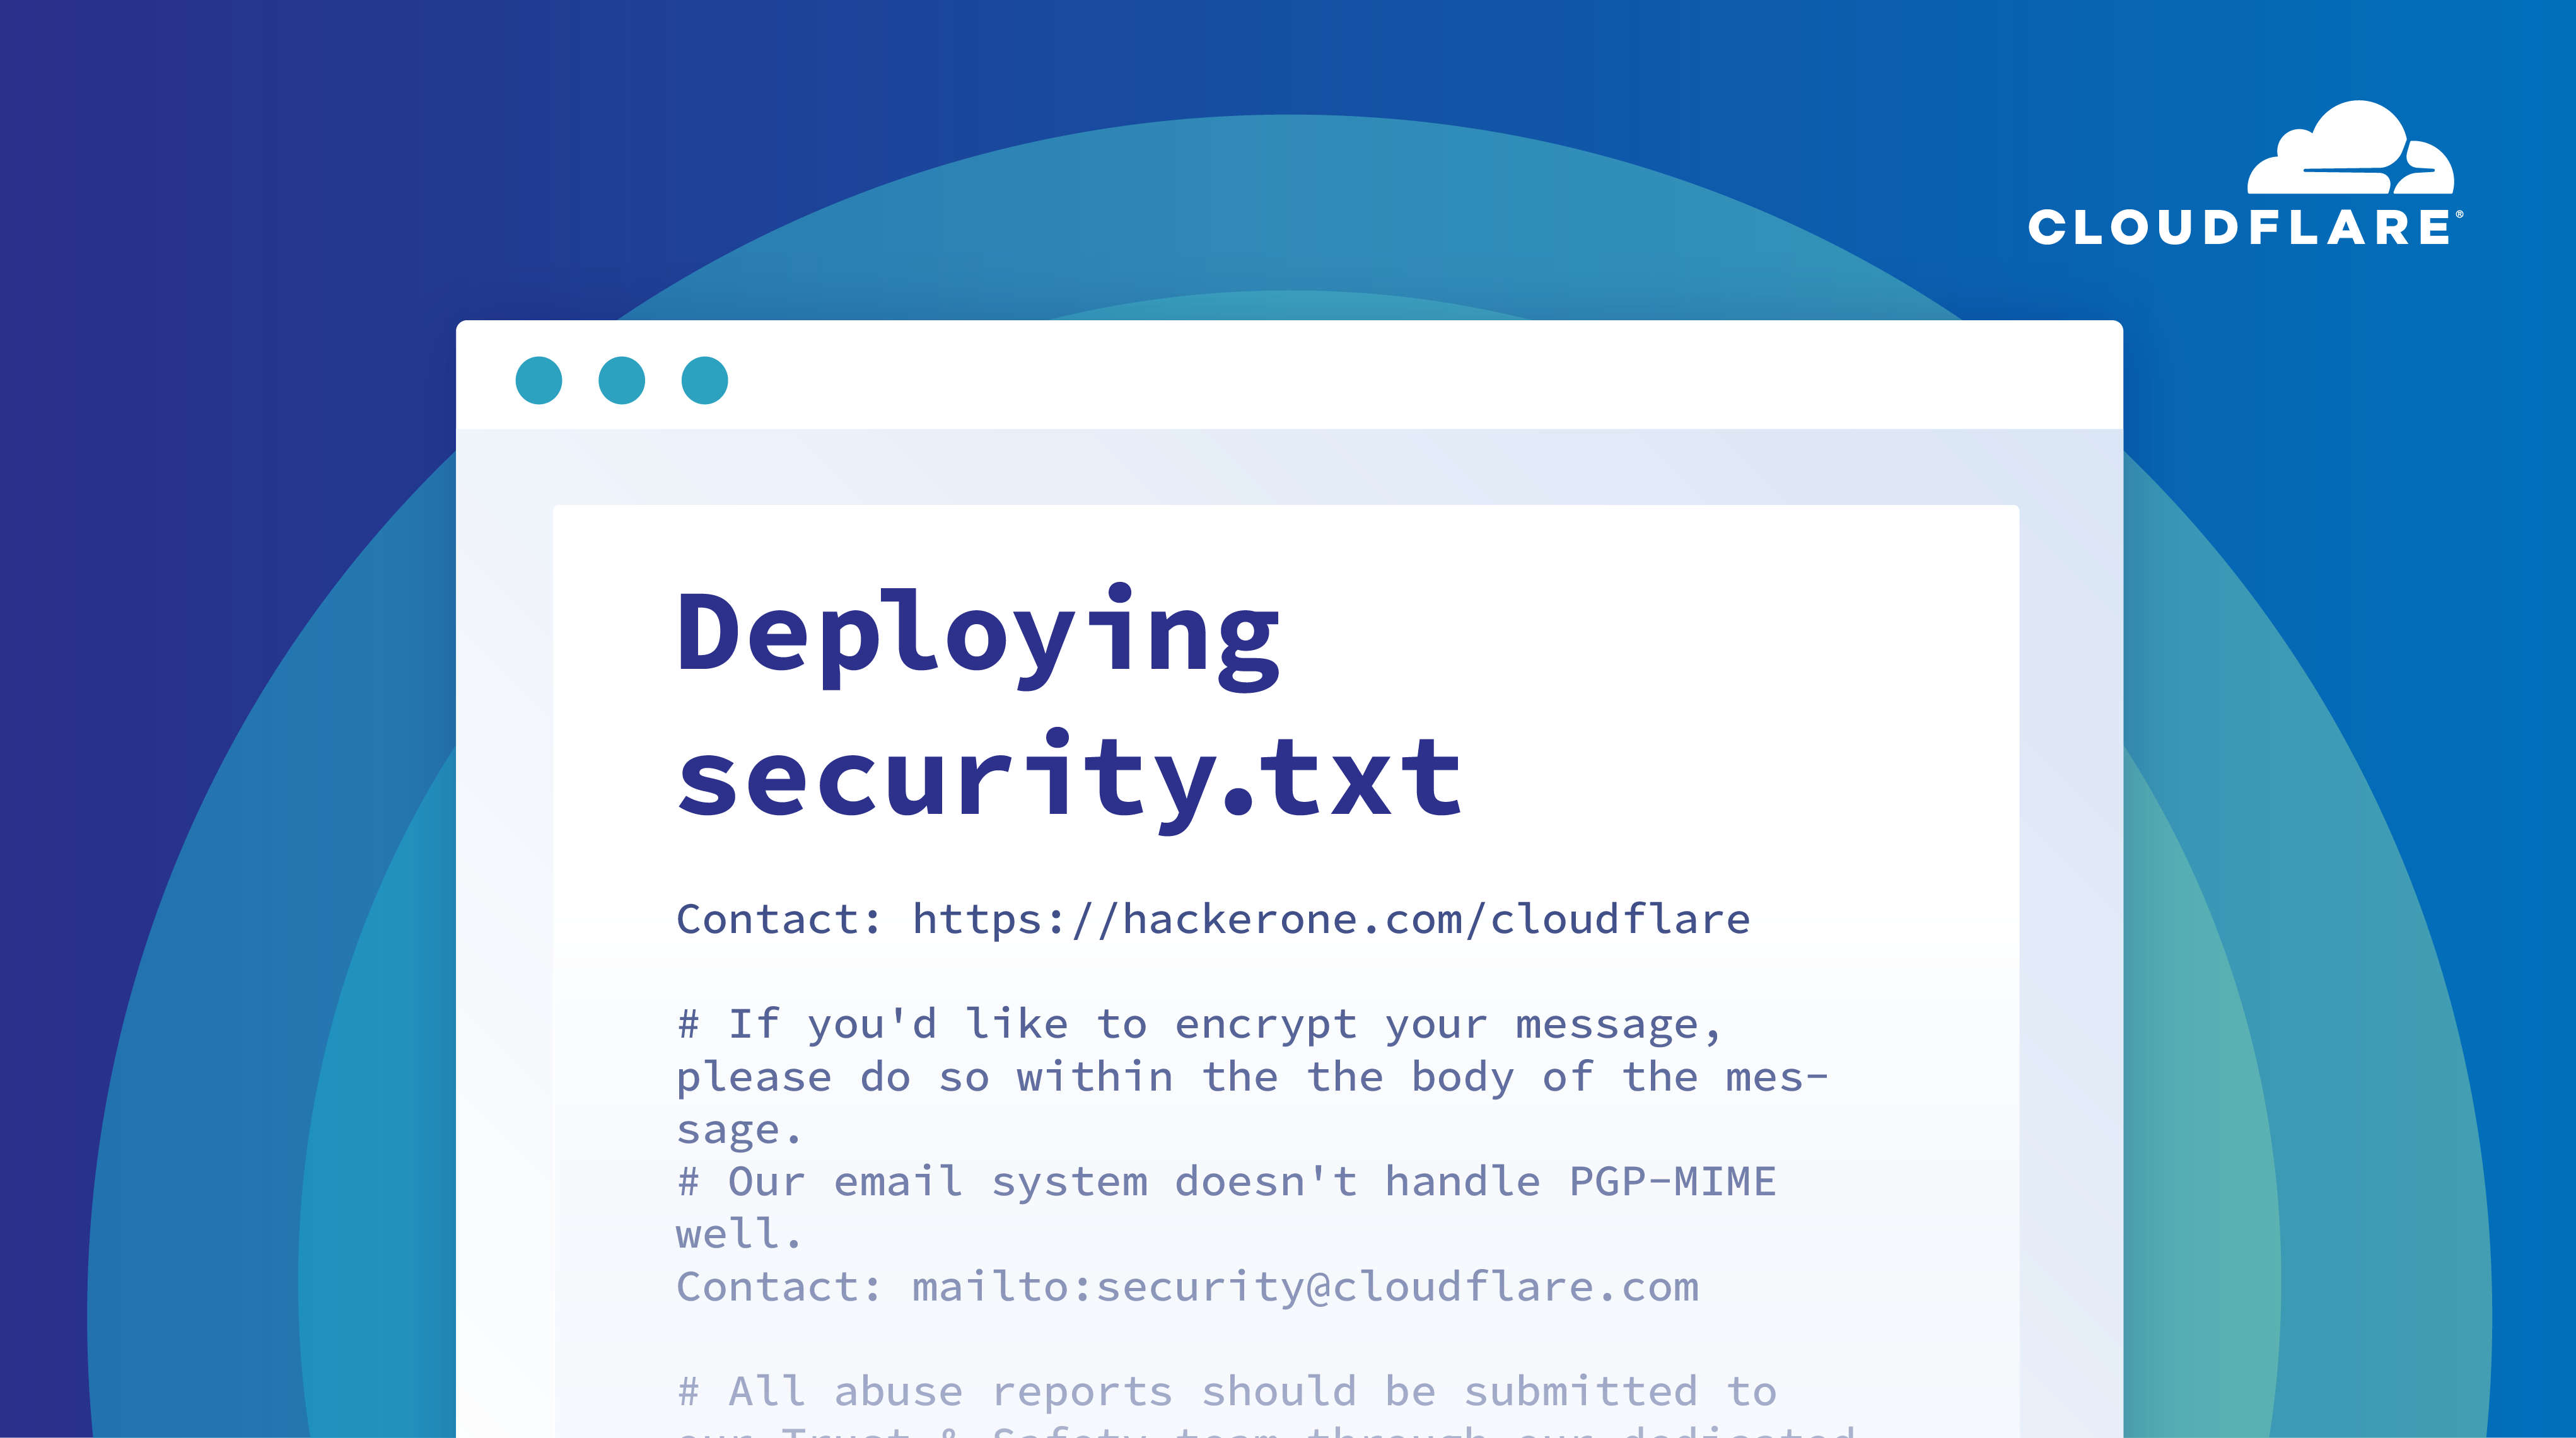 Deploying security.txt: how Cloudflare's security team builds on Workers